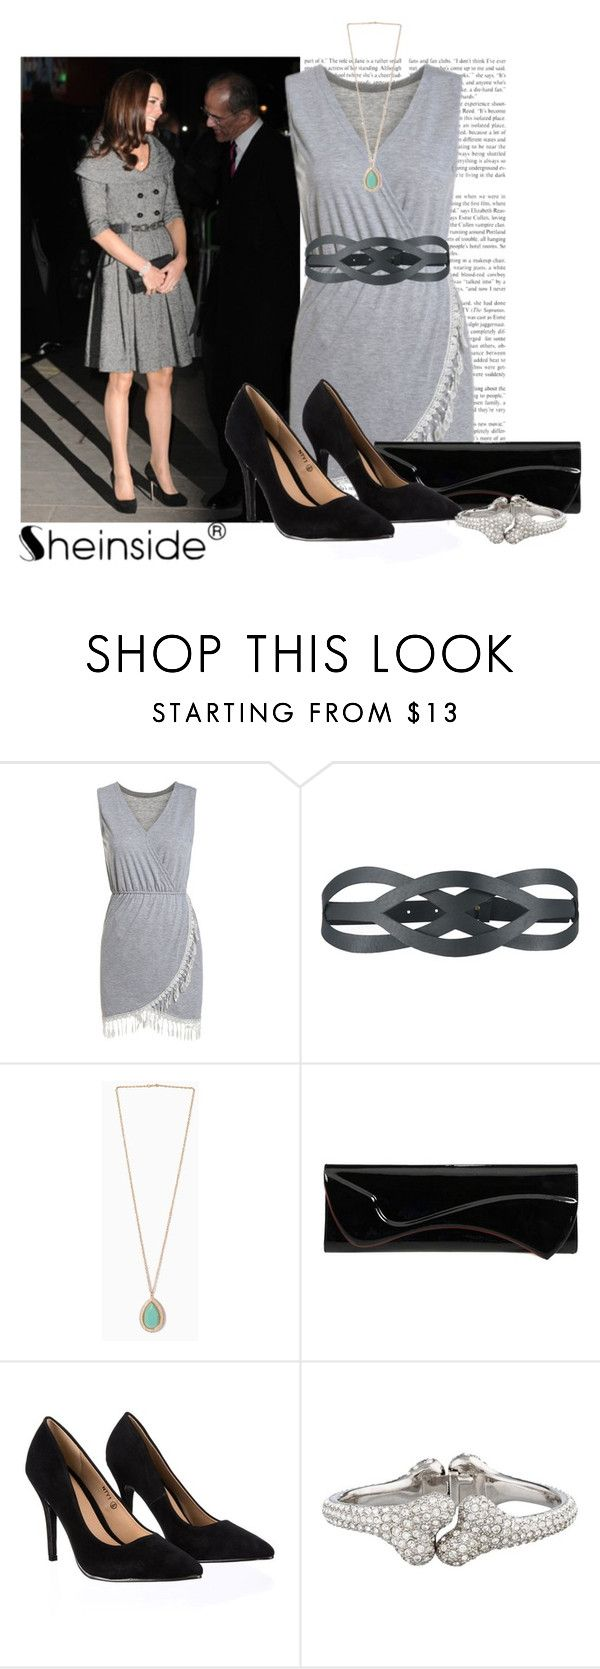 """Kate"" by a-z07 ❤ liked on Polyvore featuring Jesire, Ilundi, Christian Louboutin, Lipsy and Vivienne Westwood"